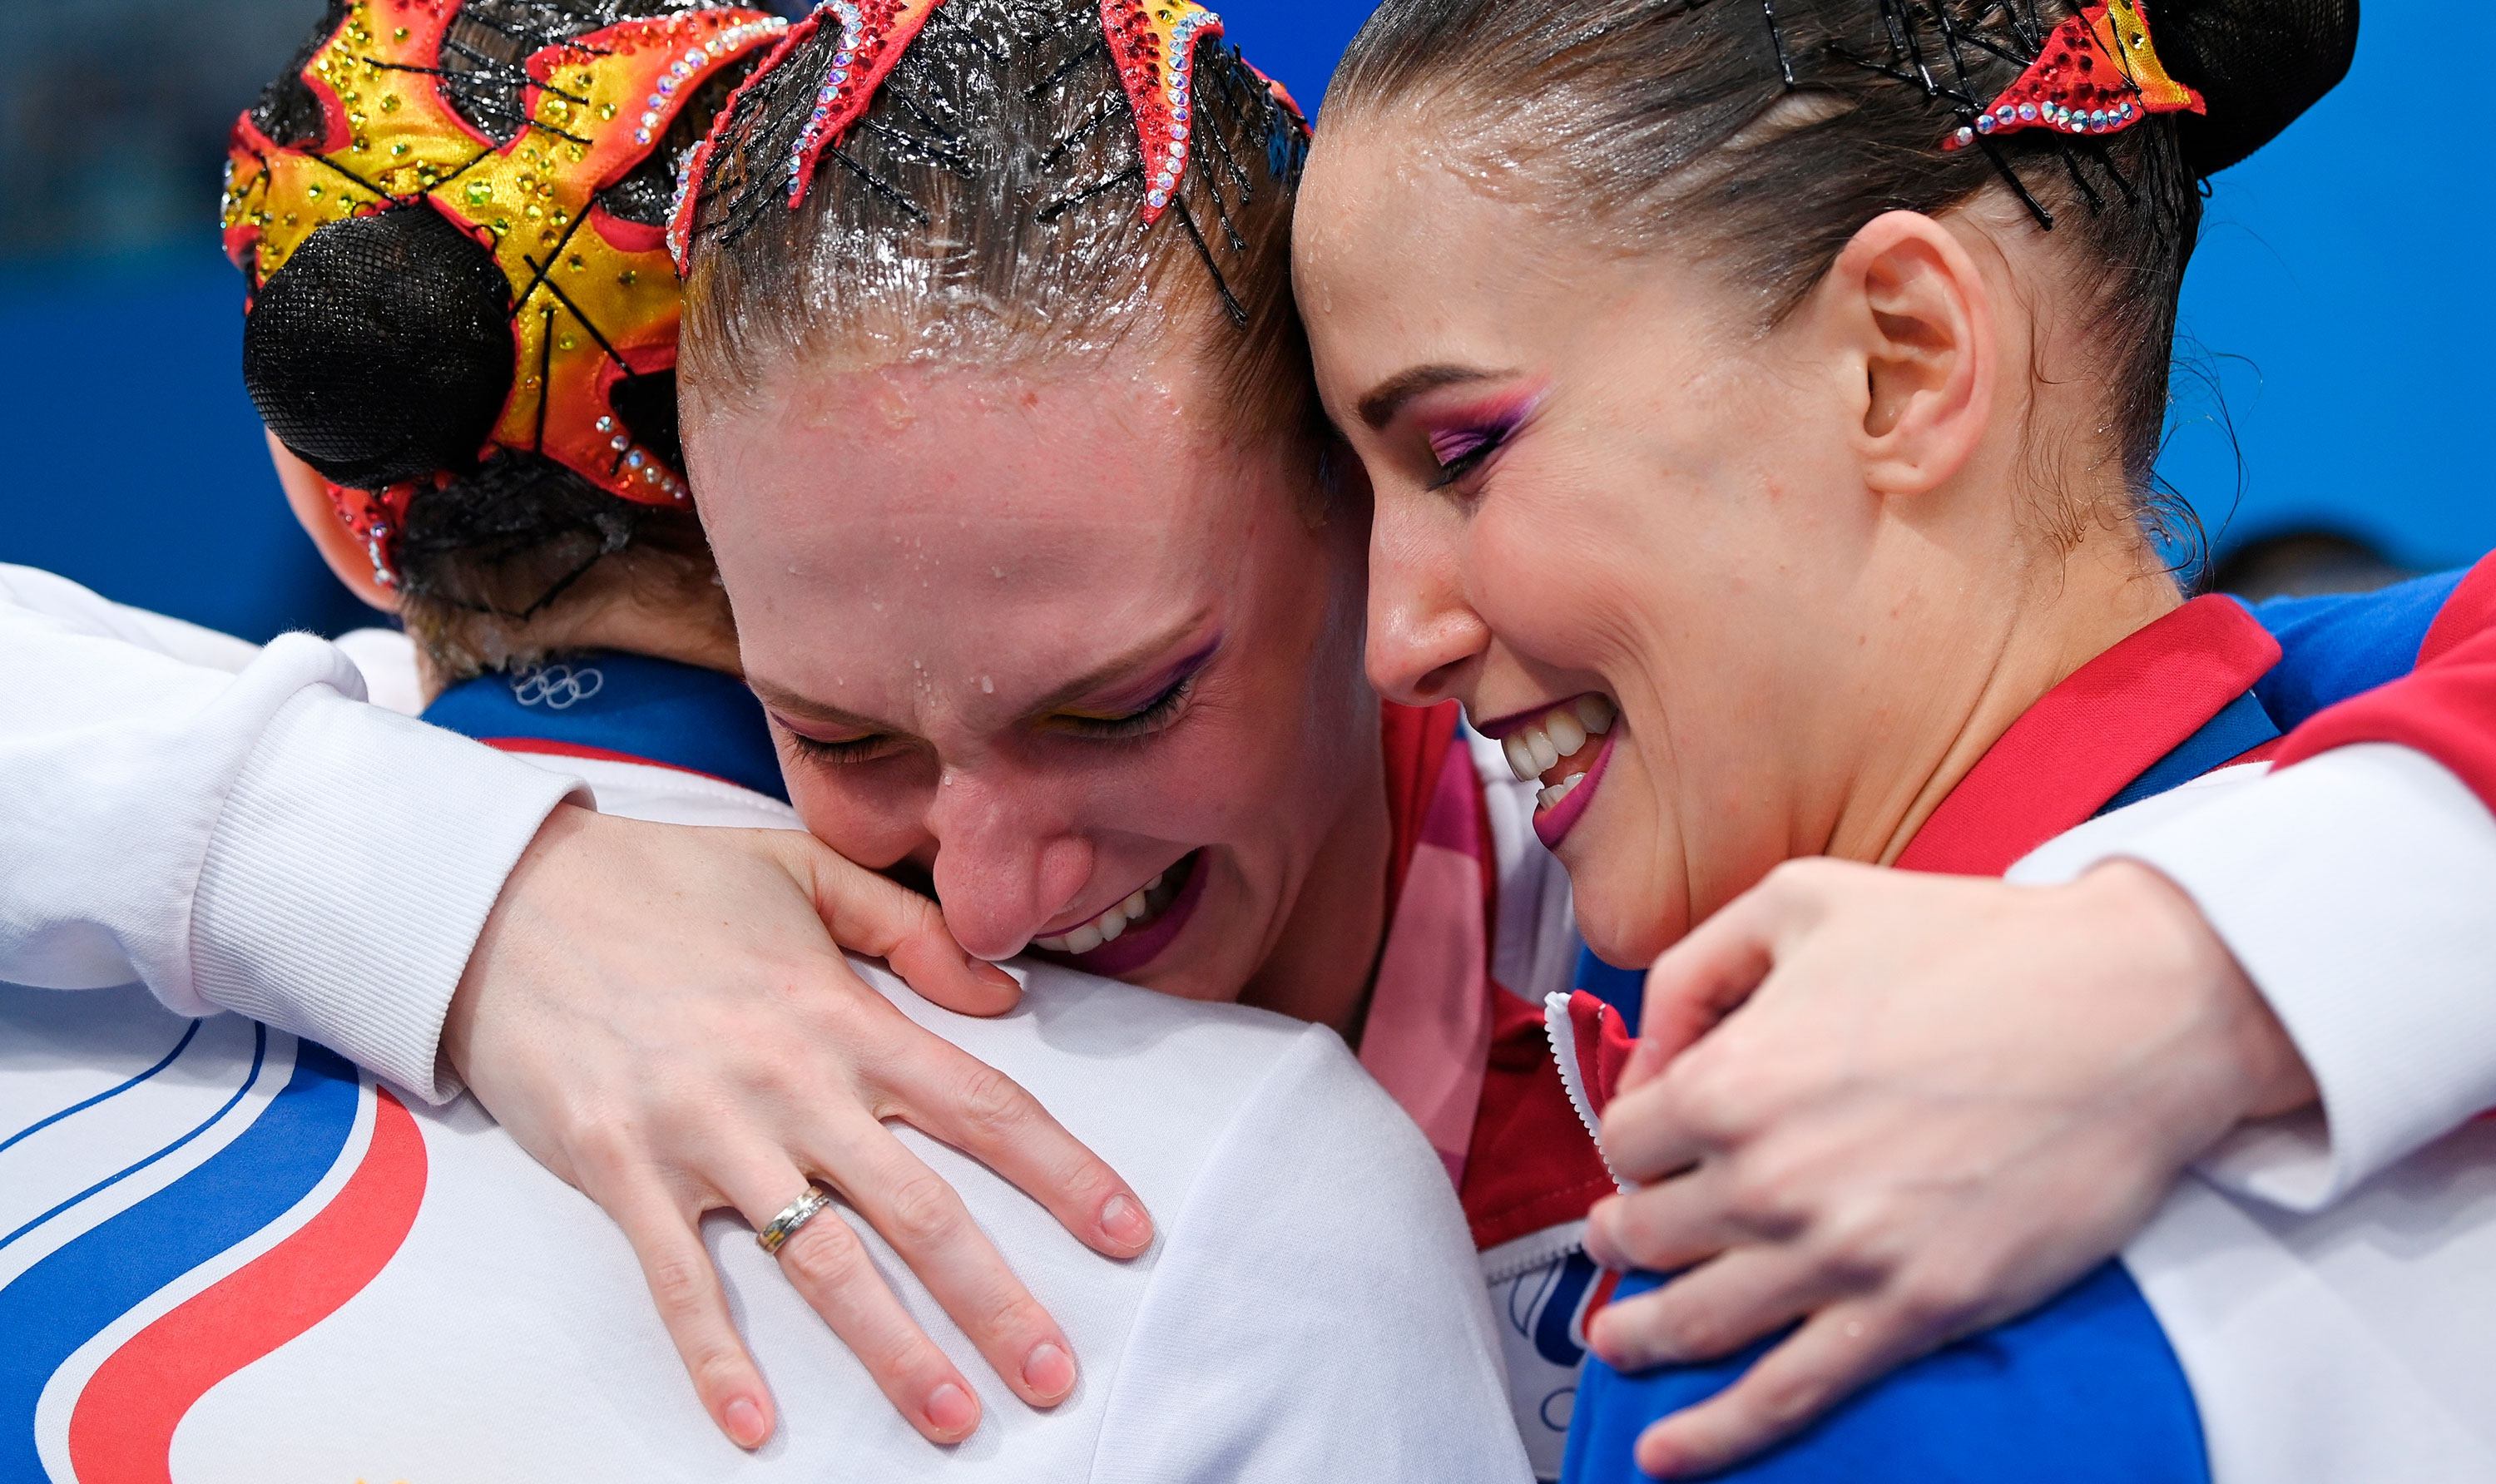 Svetlana Romashina of the Russian Olympic Committee, center, celebrates victory with her teammates after they won gold in the team artistic swimming final.